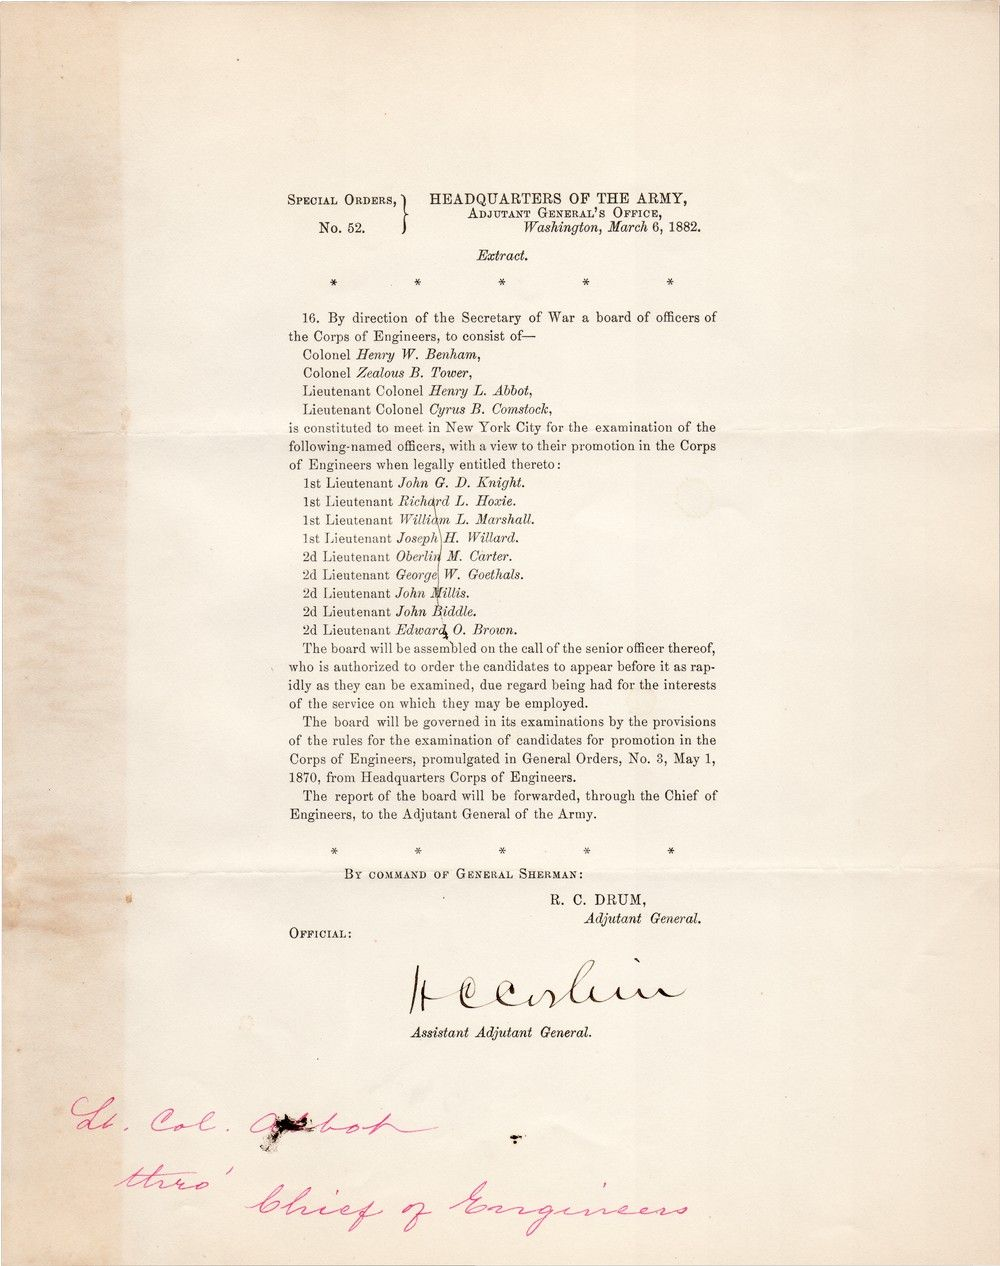 H.C. Corbin, Who Established Policy of Religious Furloughs for Jewish Soldiers, Postbellum Army Documents